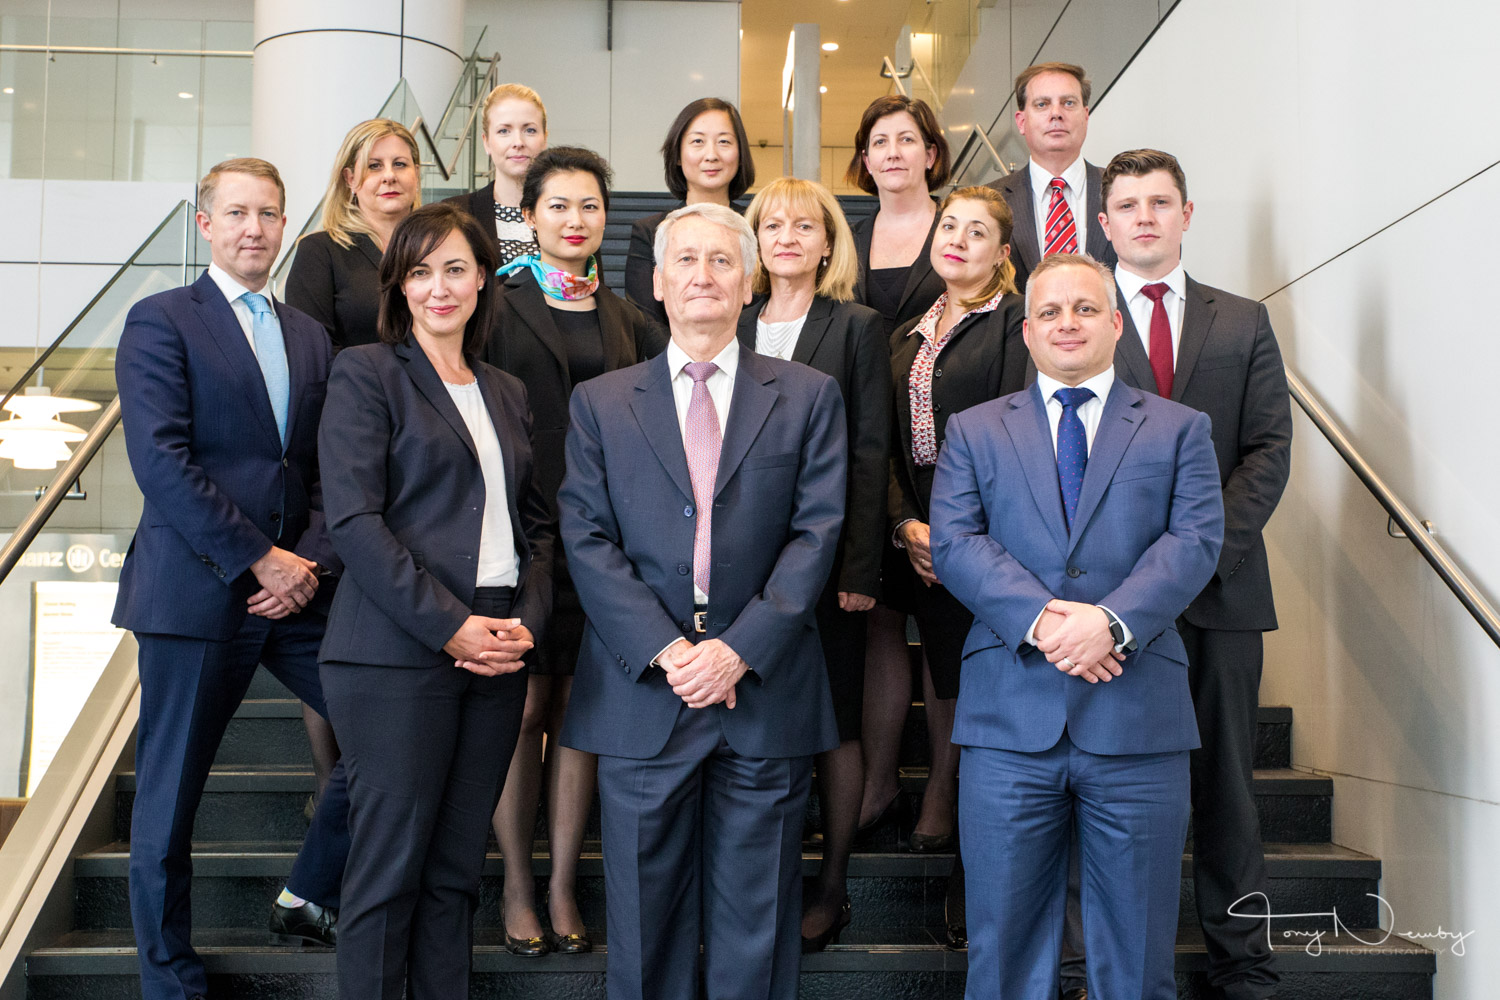 Entire team,group or organisation photos for business organisations and corporations